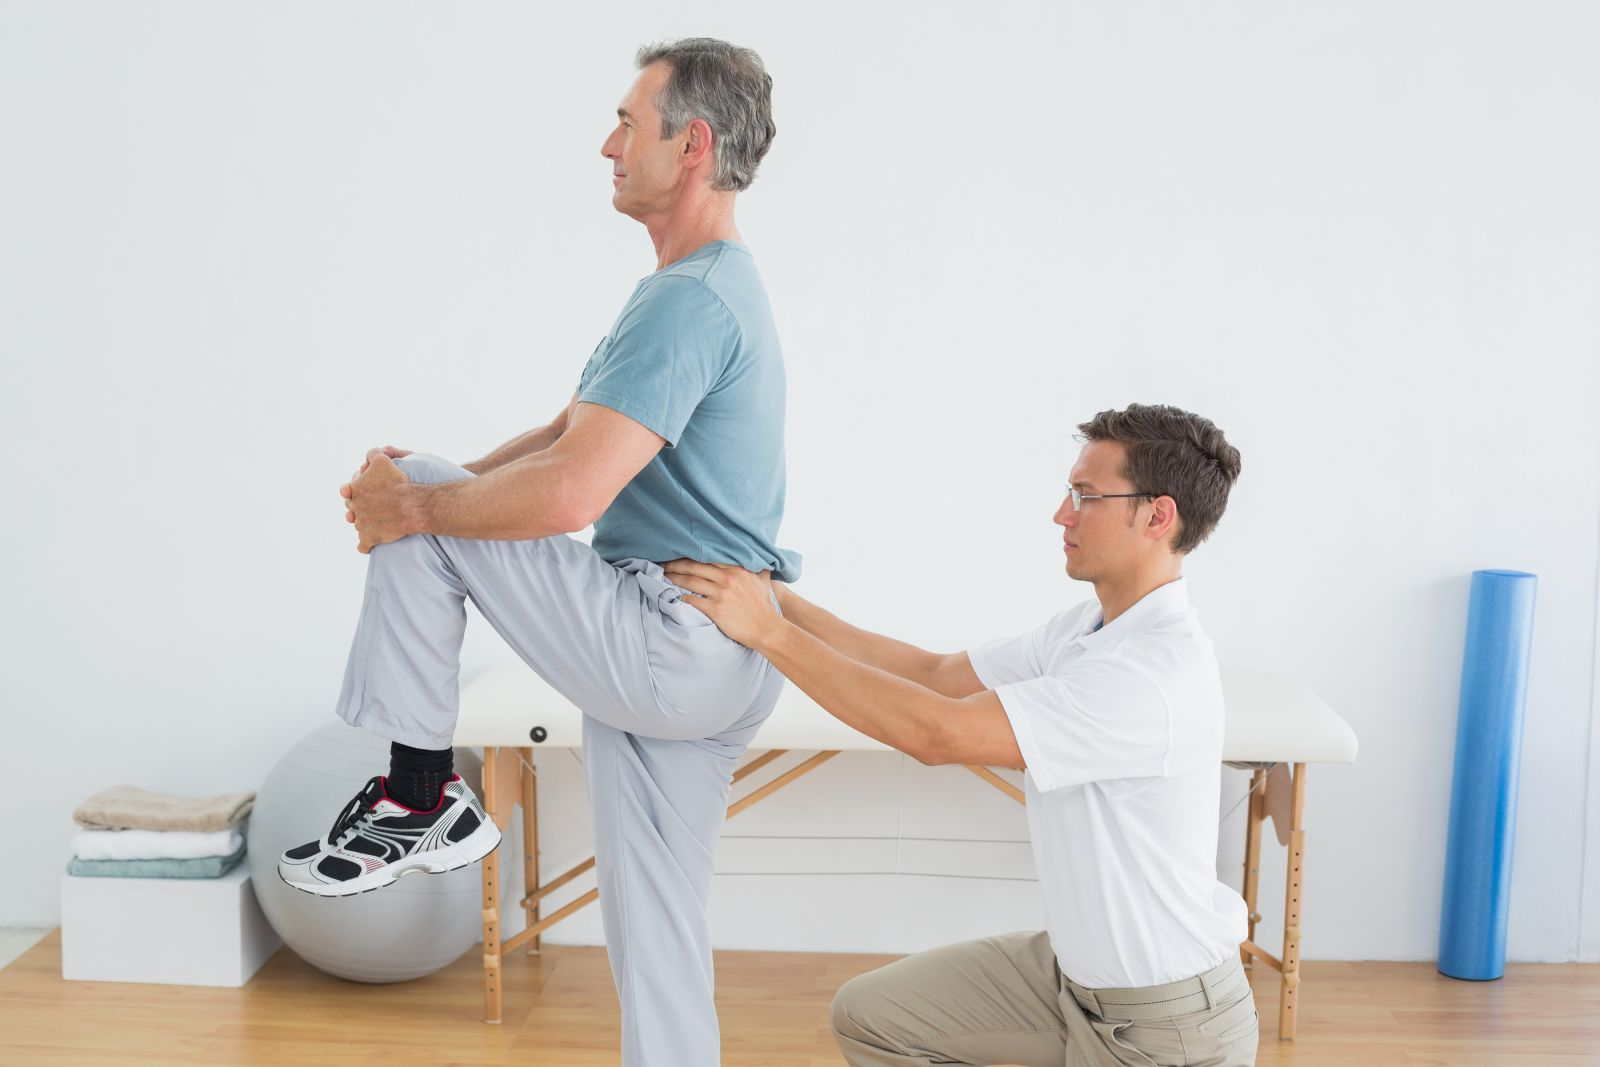 how to get into physical therapy